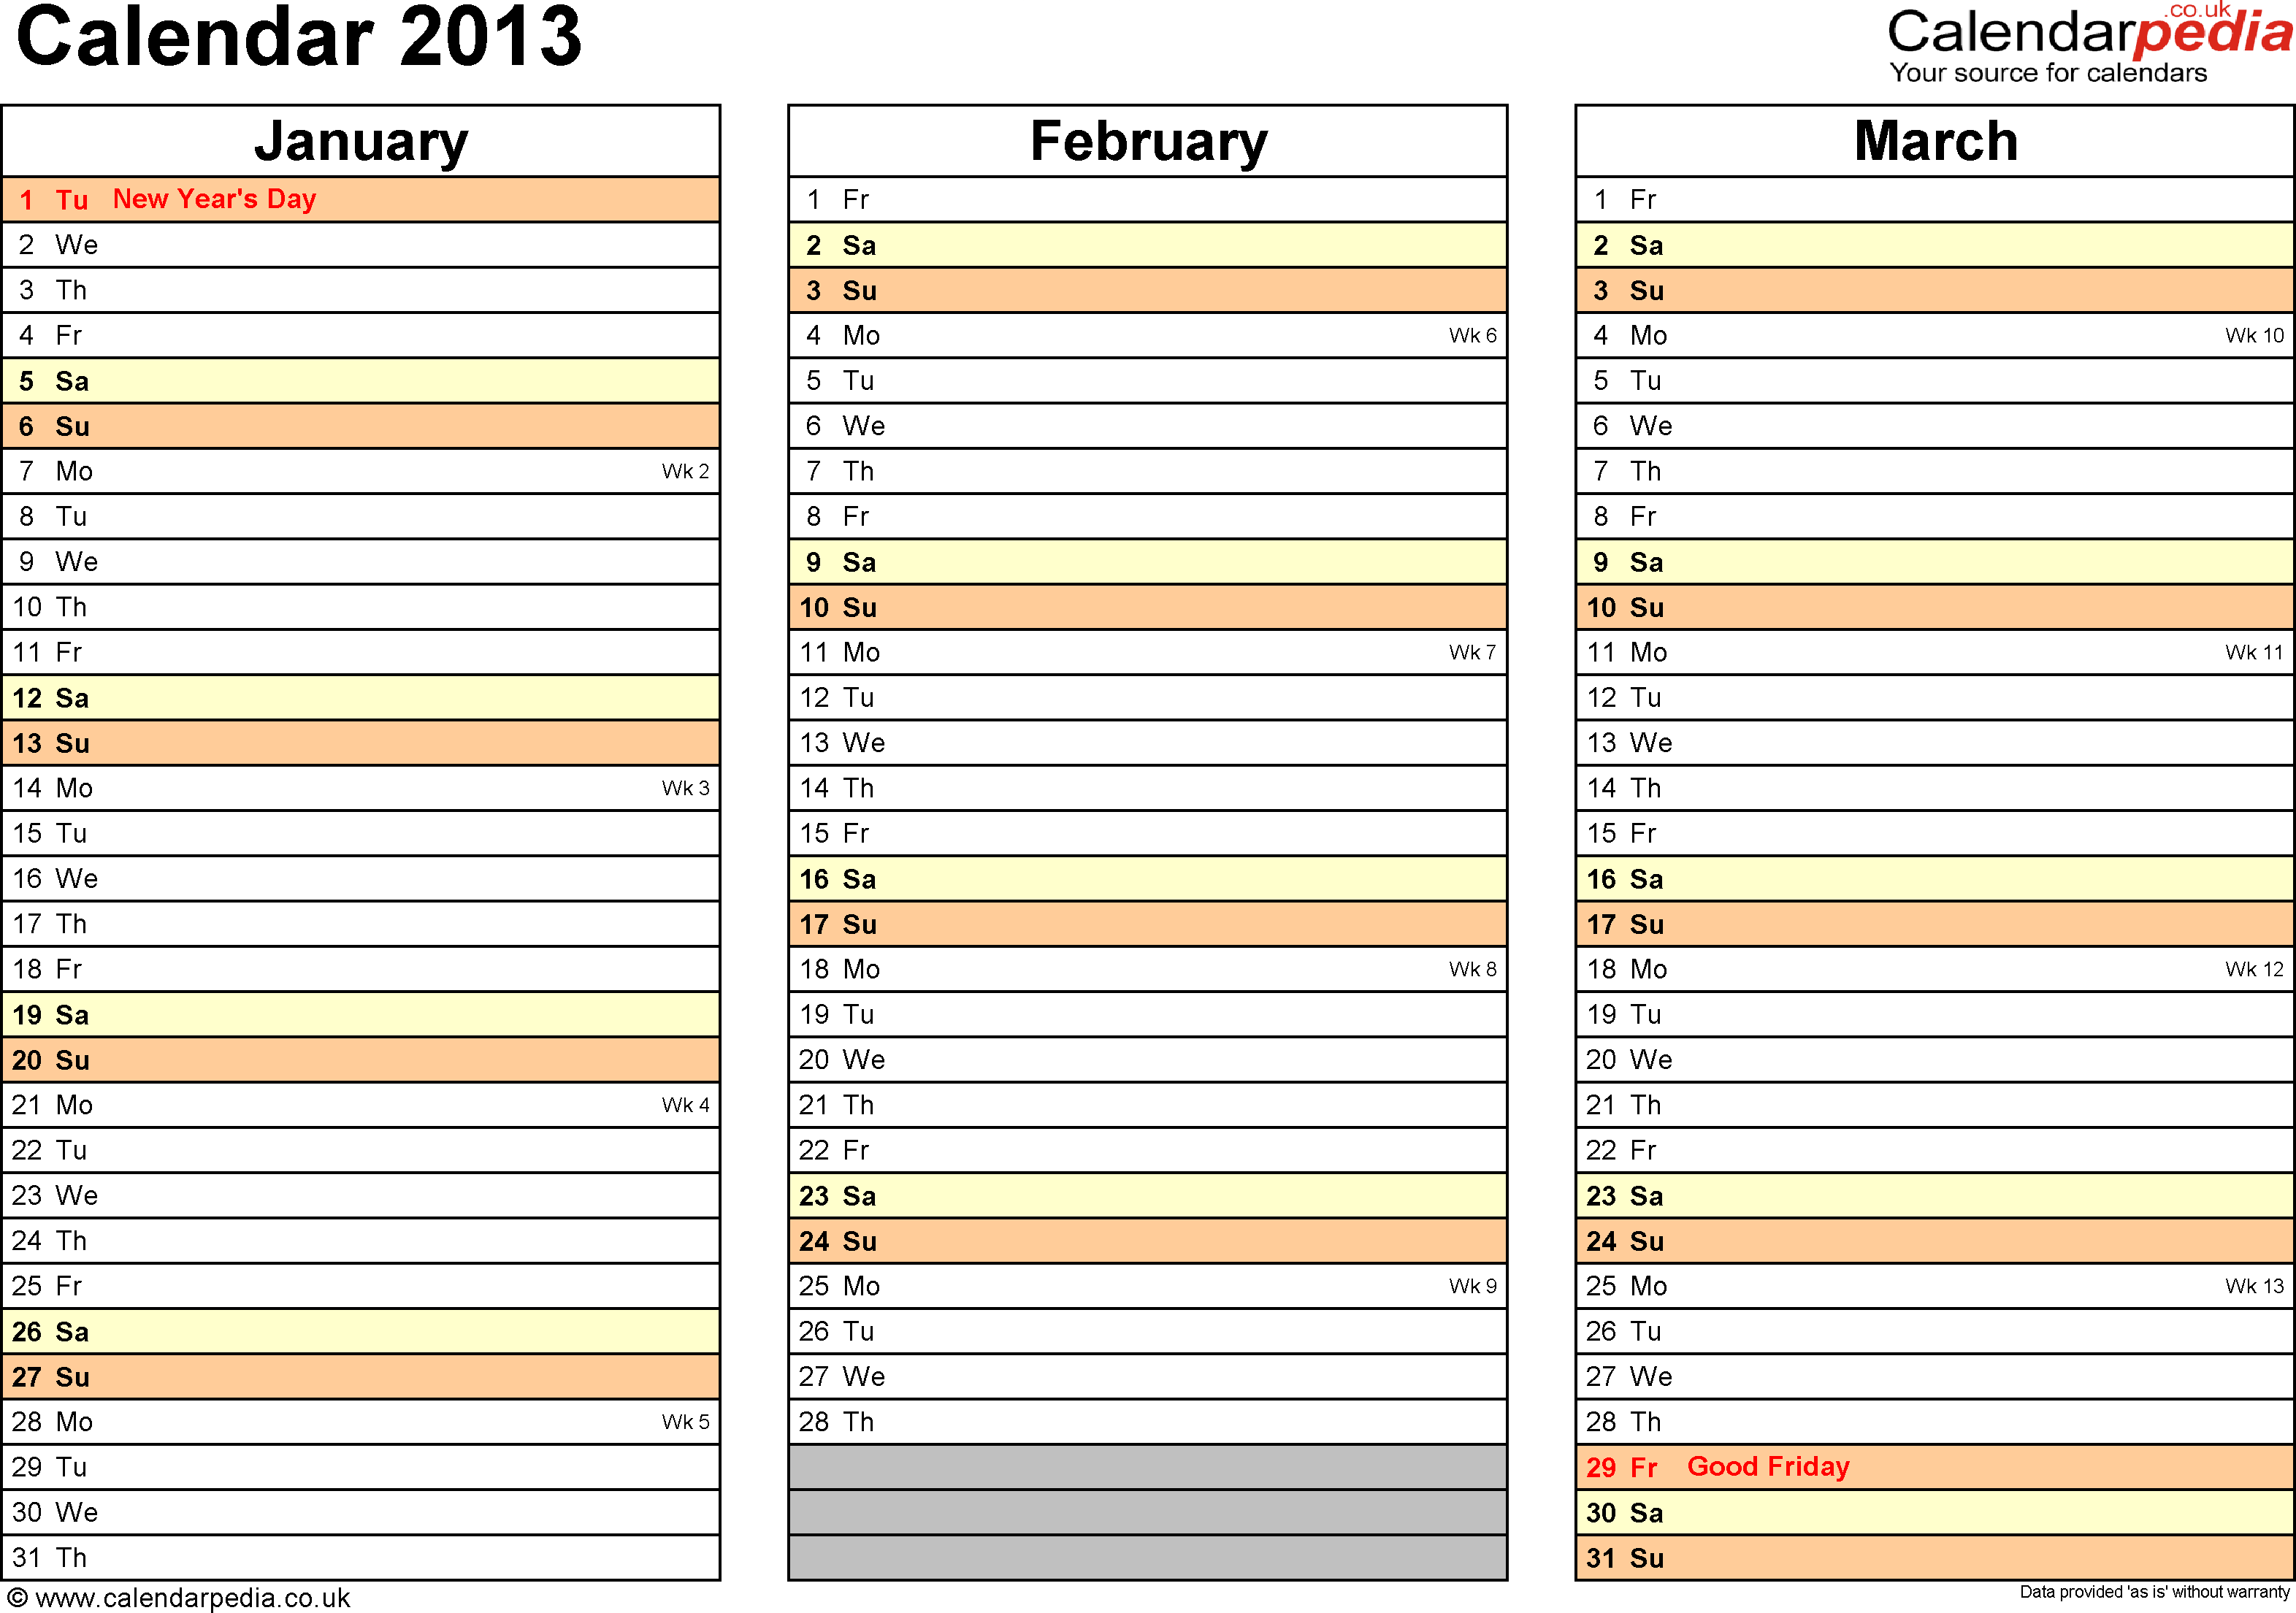 Template 6: Yearly calendar 2013 as PDF template, landscape orientation, 4 pages, months horizontally, days vertically, with UK bank holidays and week numbers